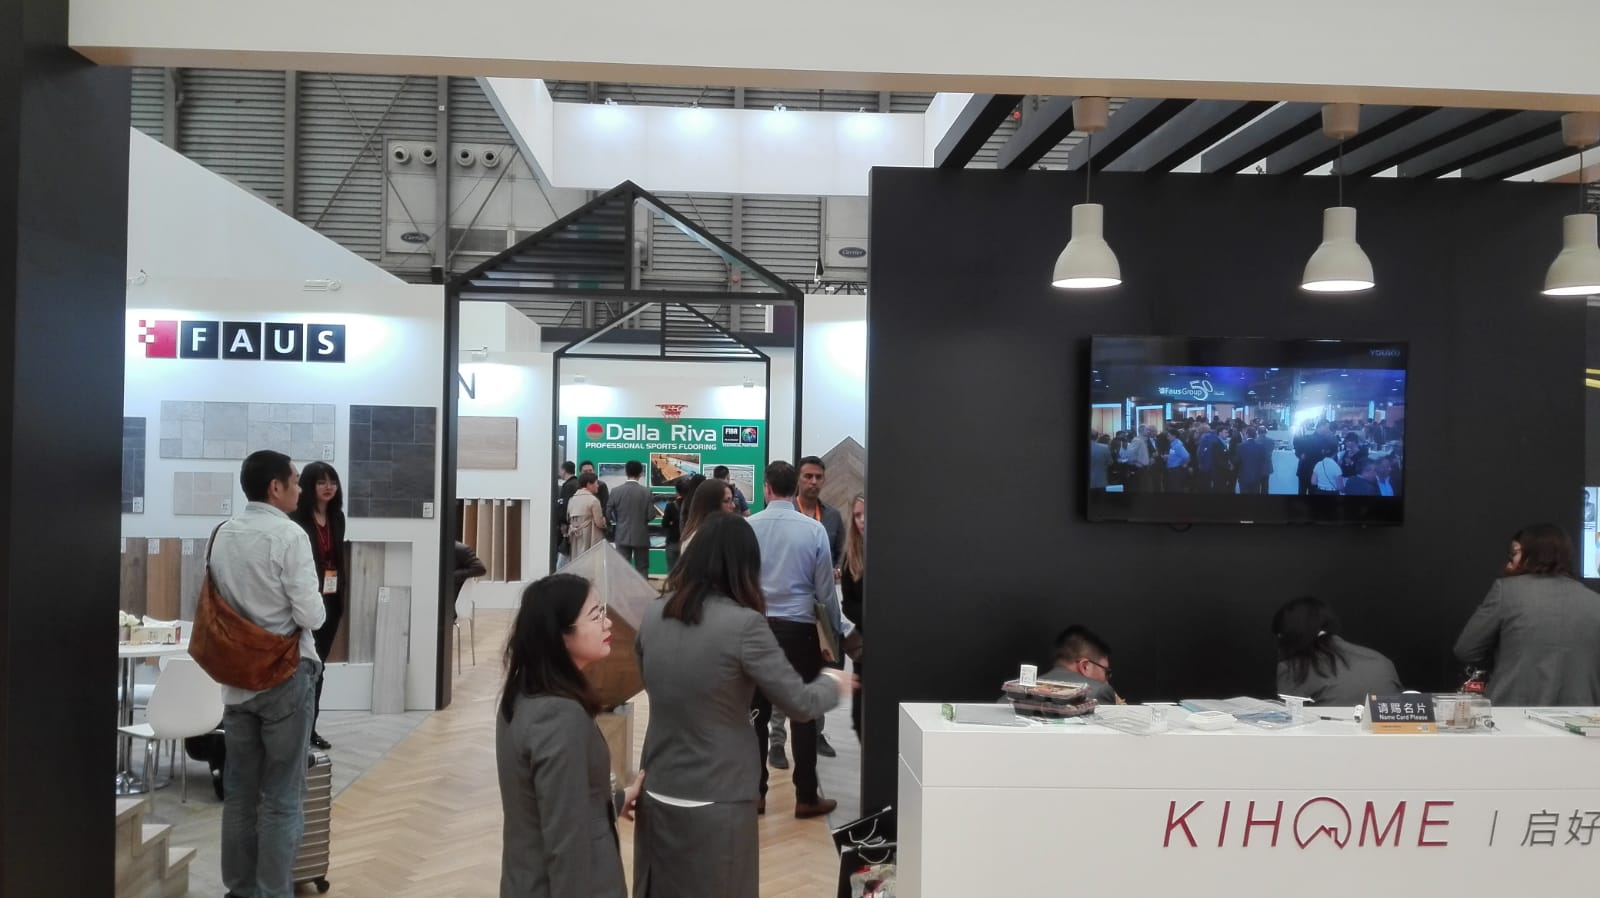 Even from a distance, the Dalla Riva stand makes itself known